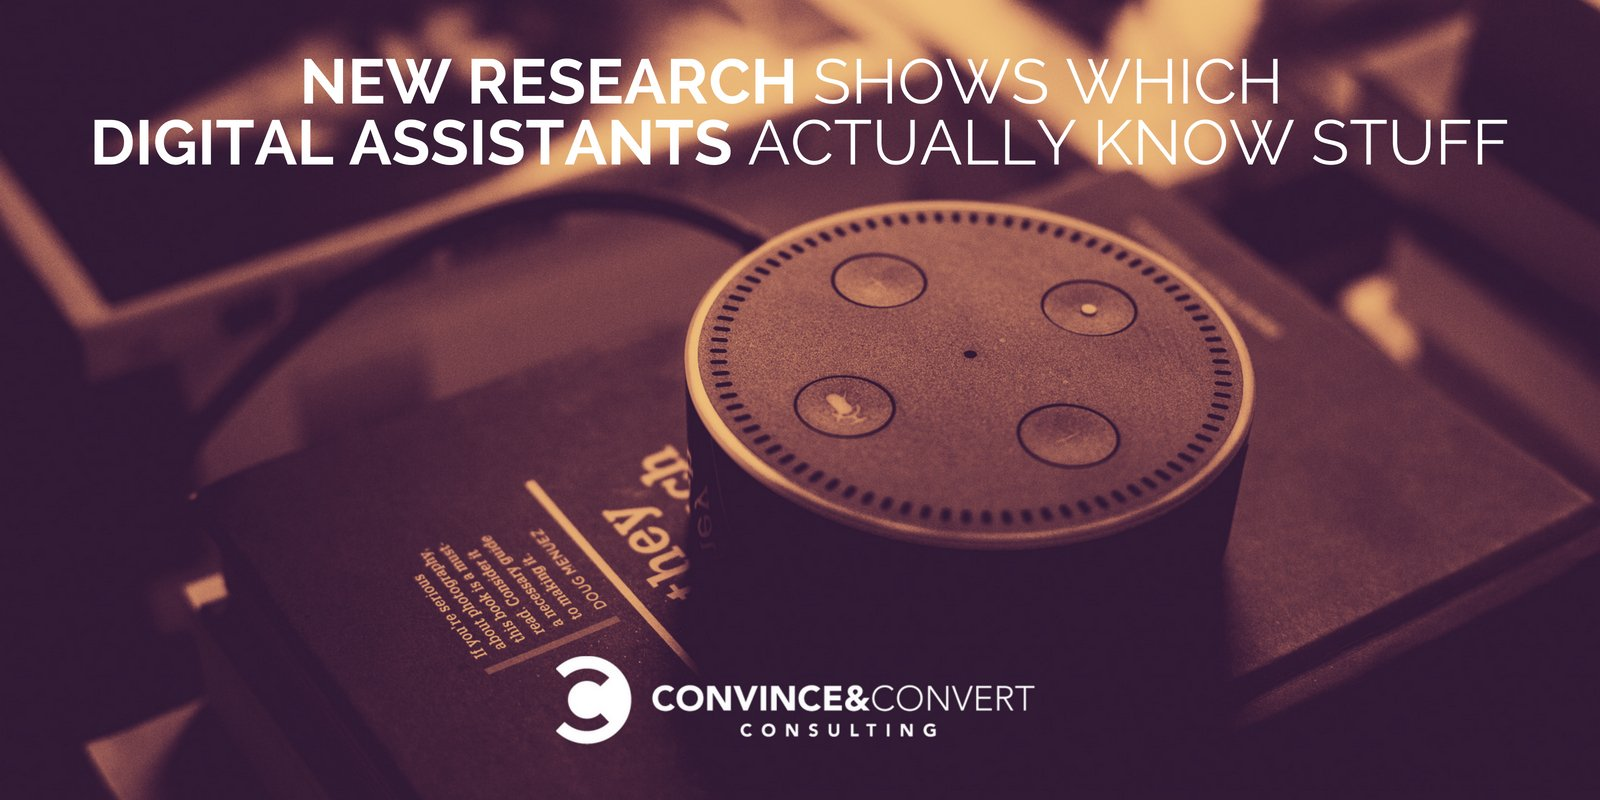 New Research Shows Which Digital Assistants Actually Know Stuff